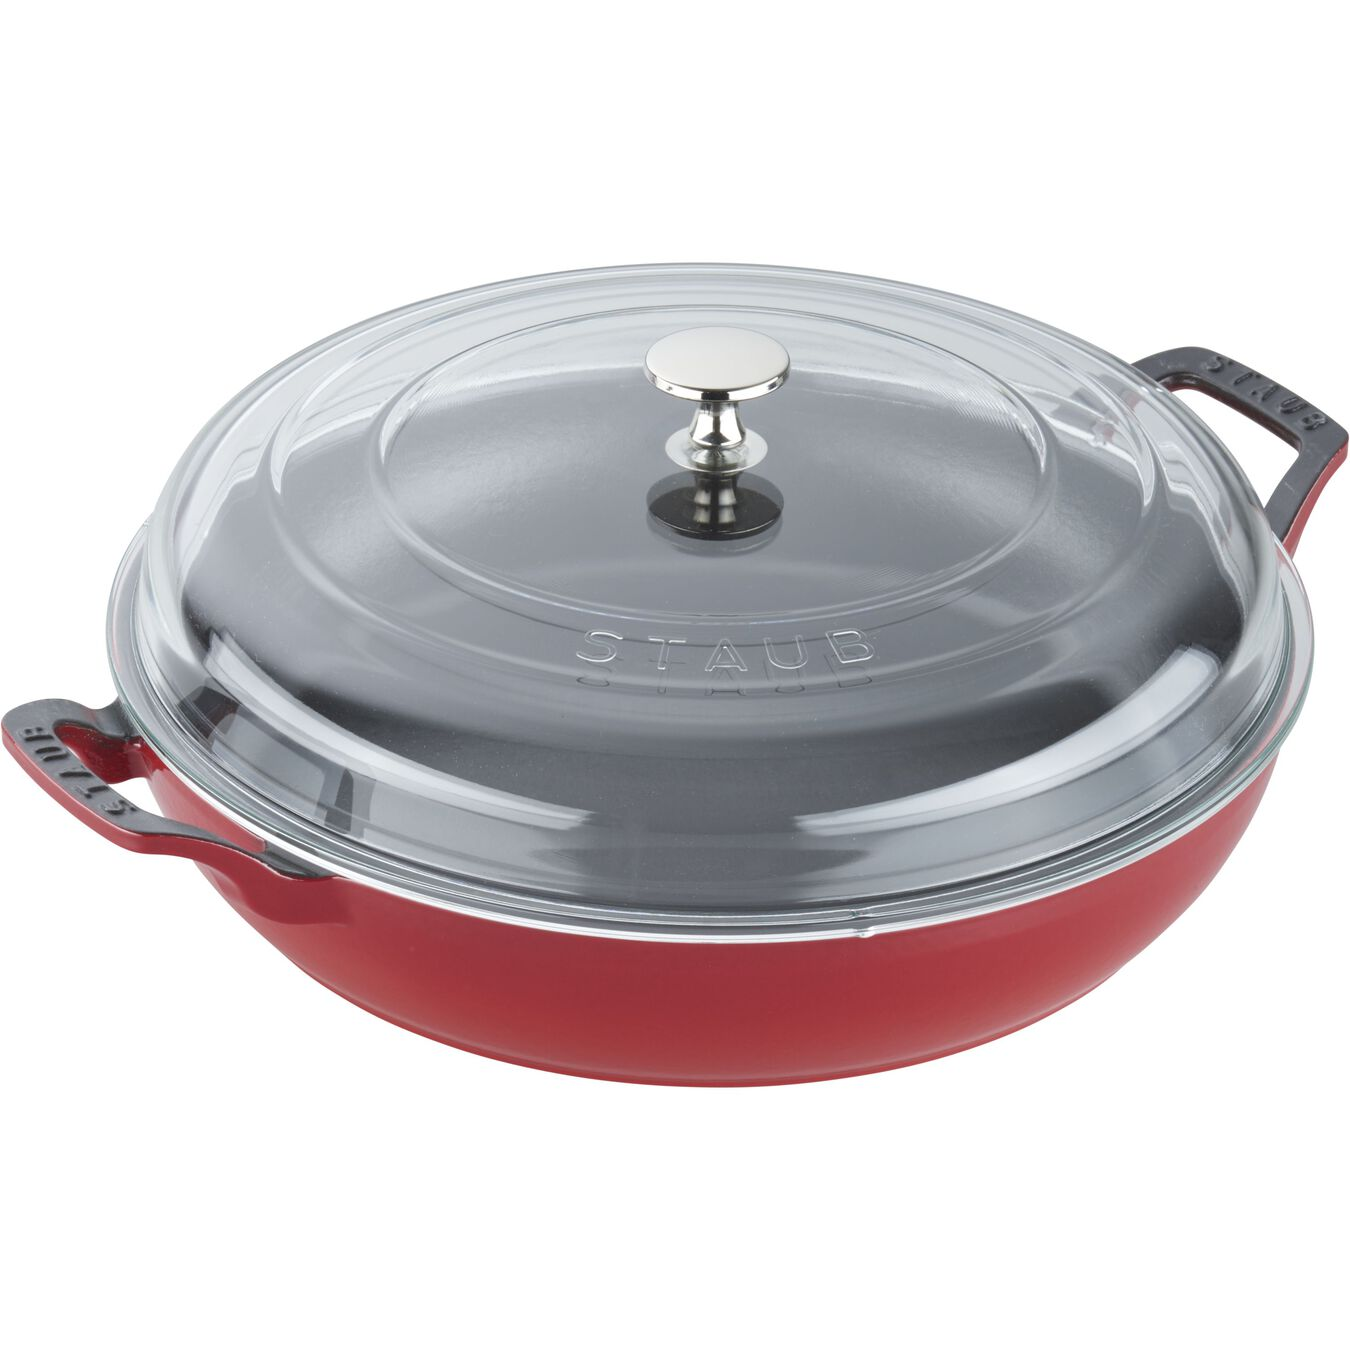 12-inch, Braiser with Glass Lid, cherry,,large 3